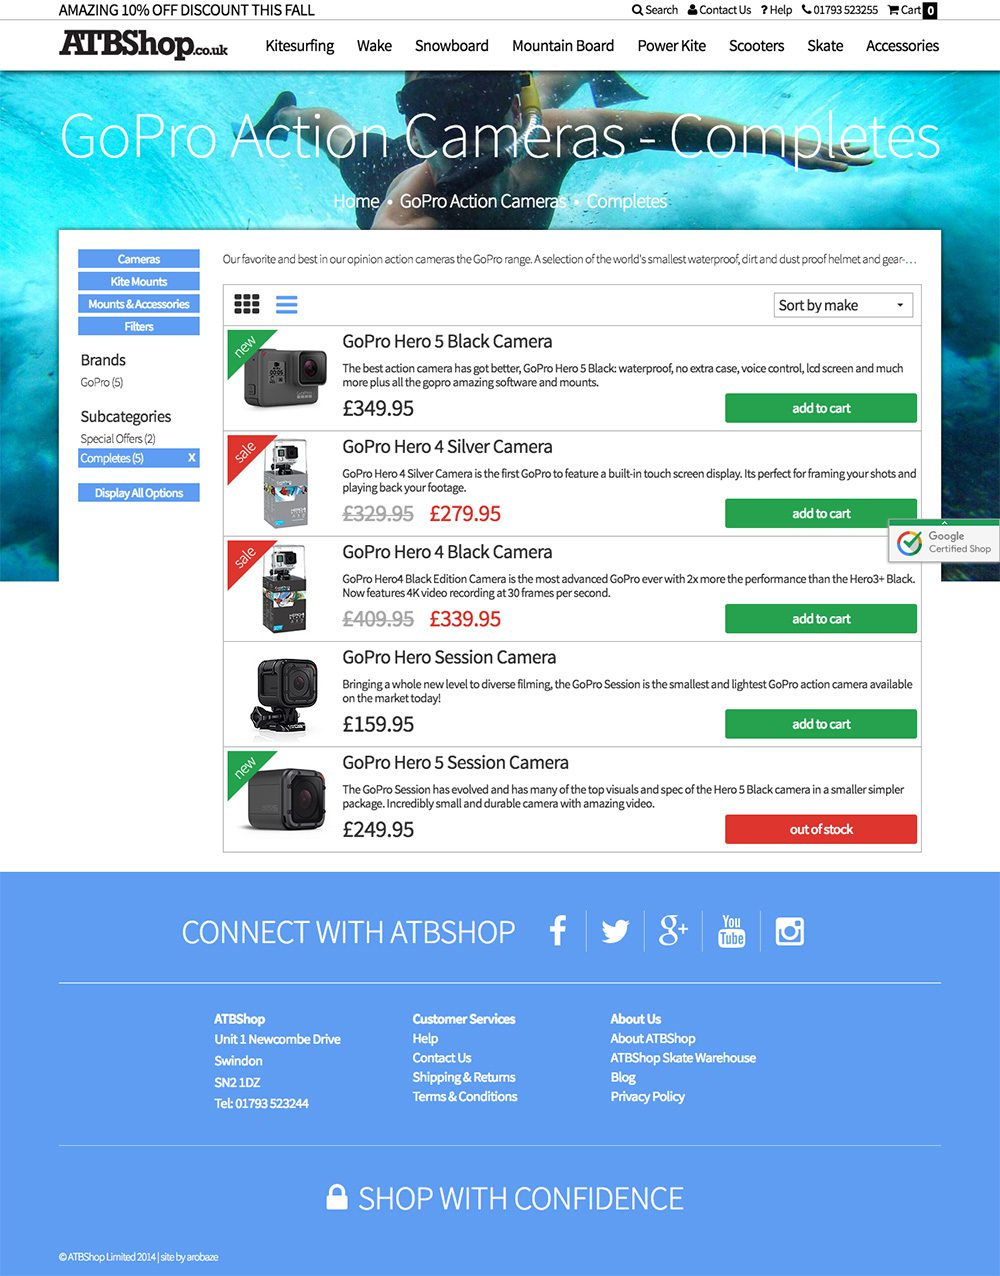 ATBShop Website from Practically.io Experts in web design and development